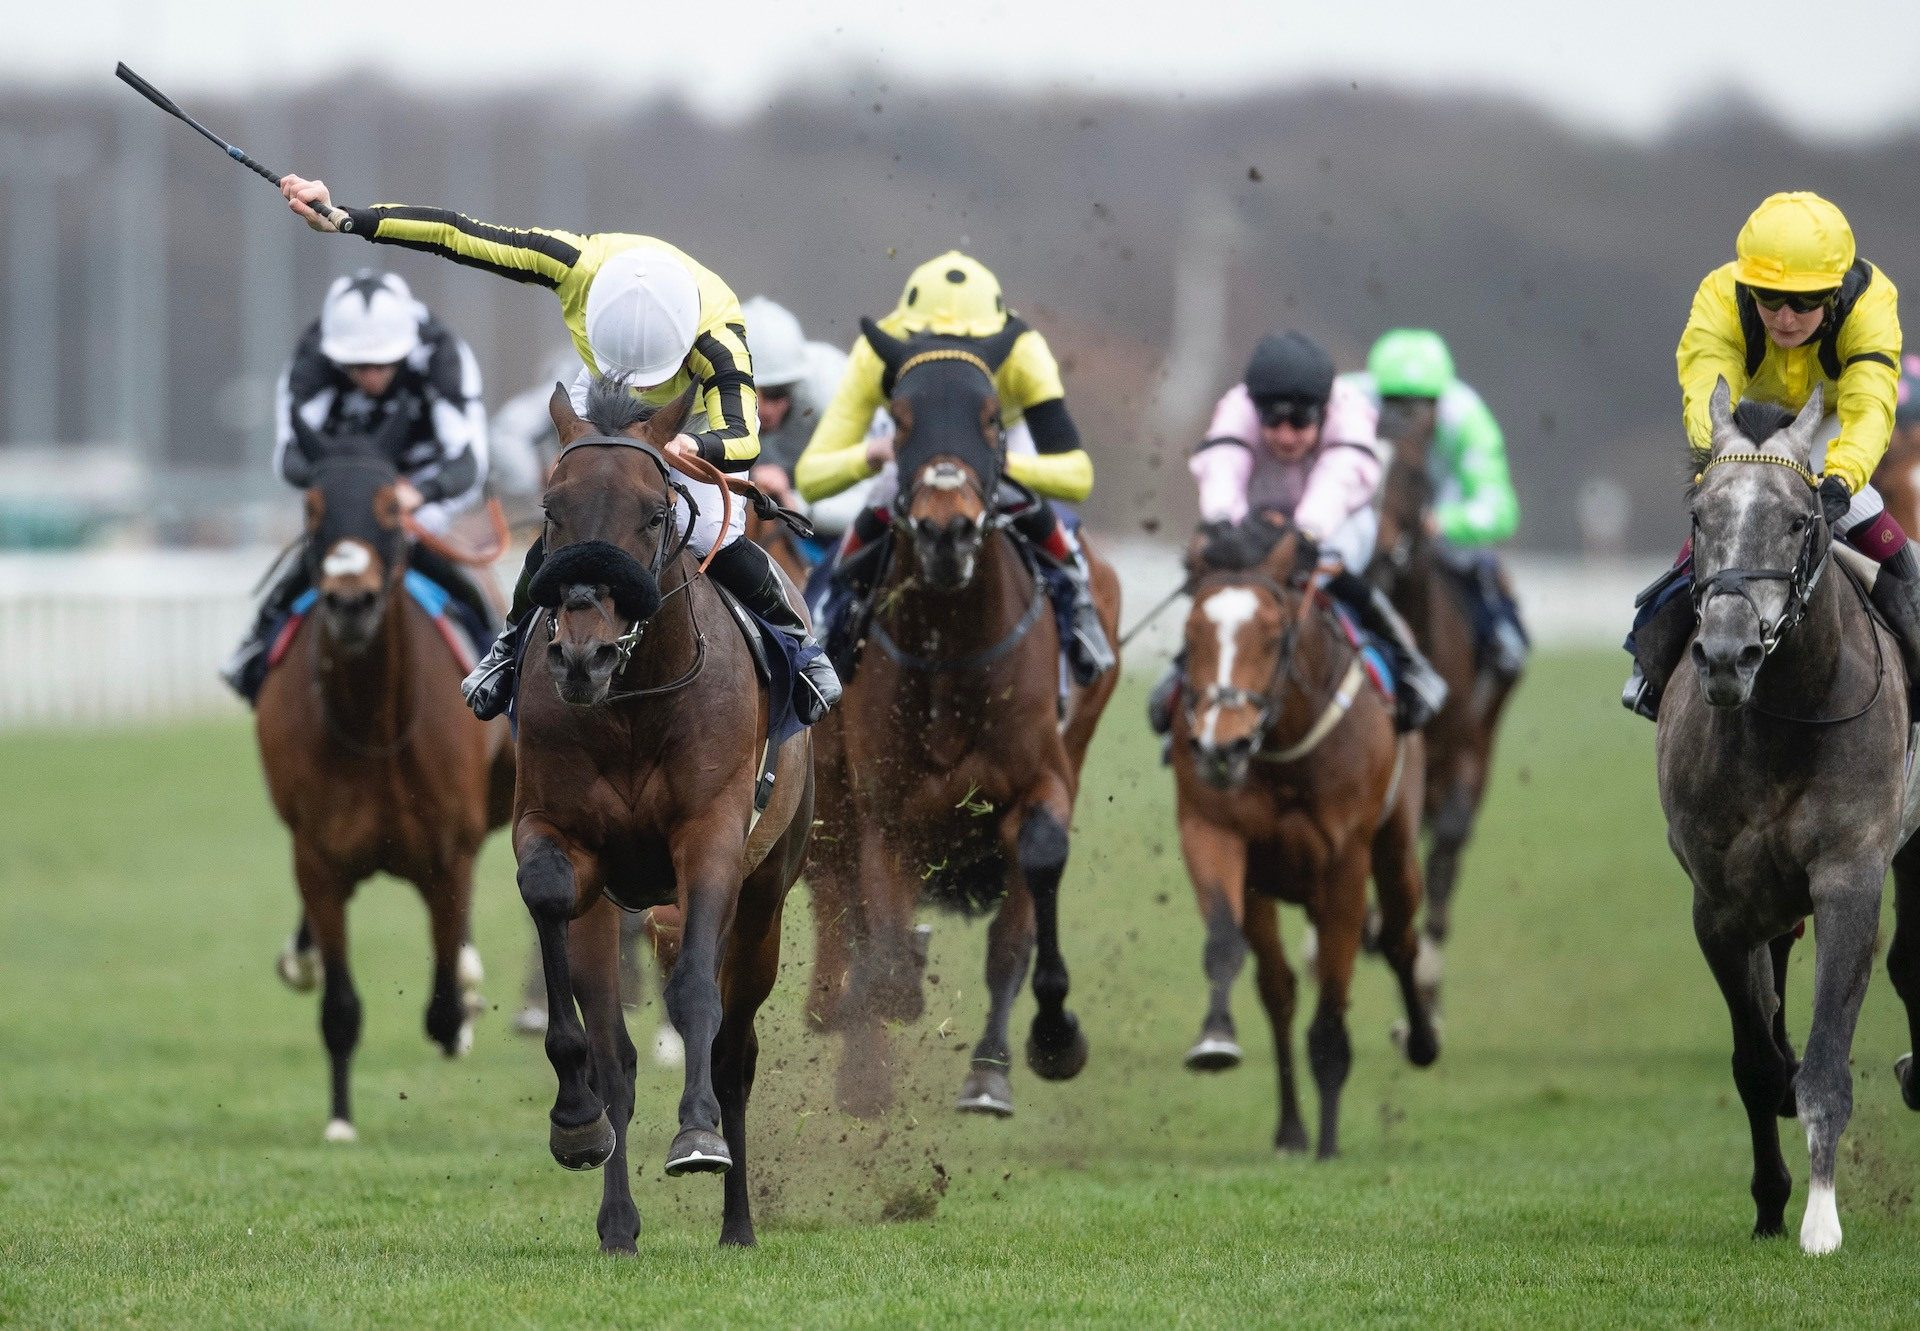 Too Friendly (Camelot) Wins His Maiden At Doncaster